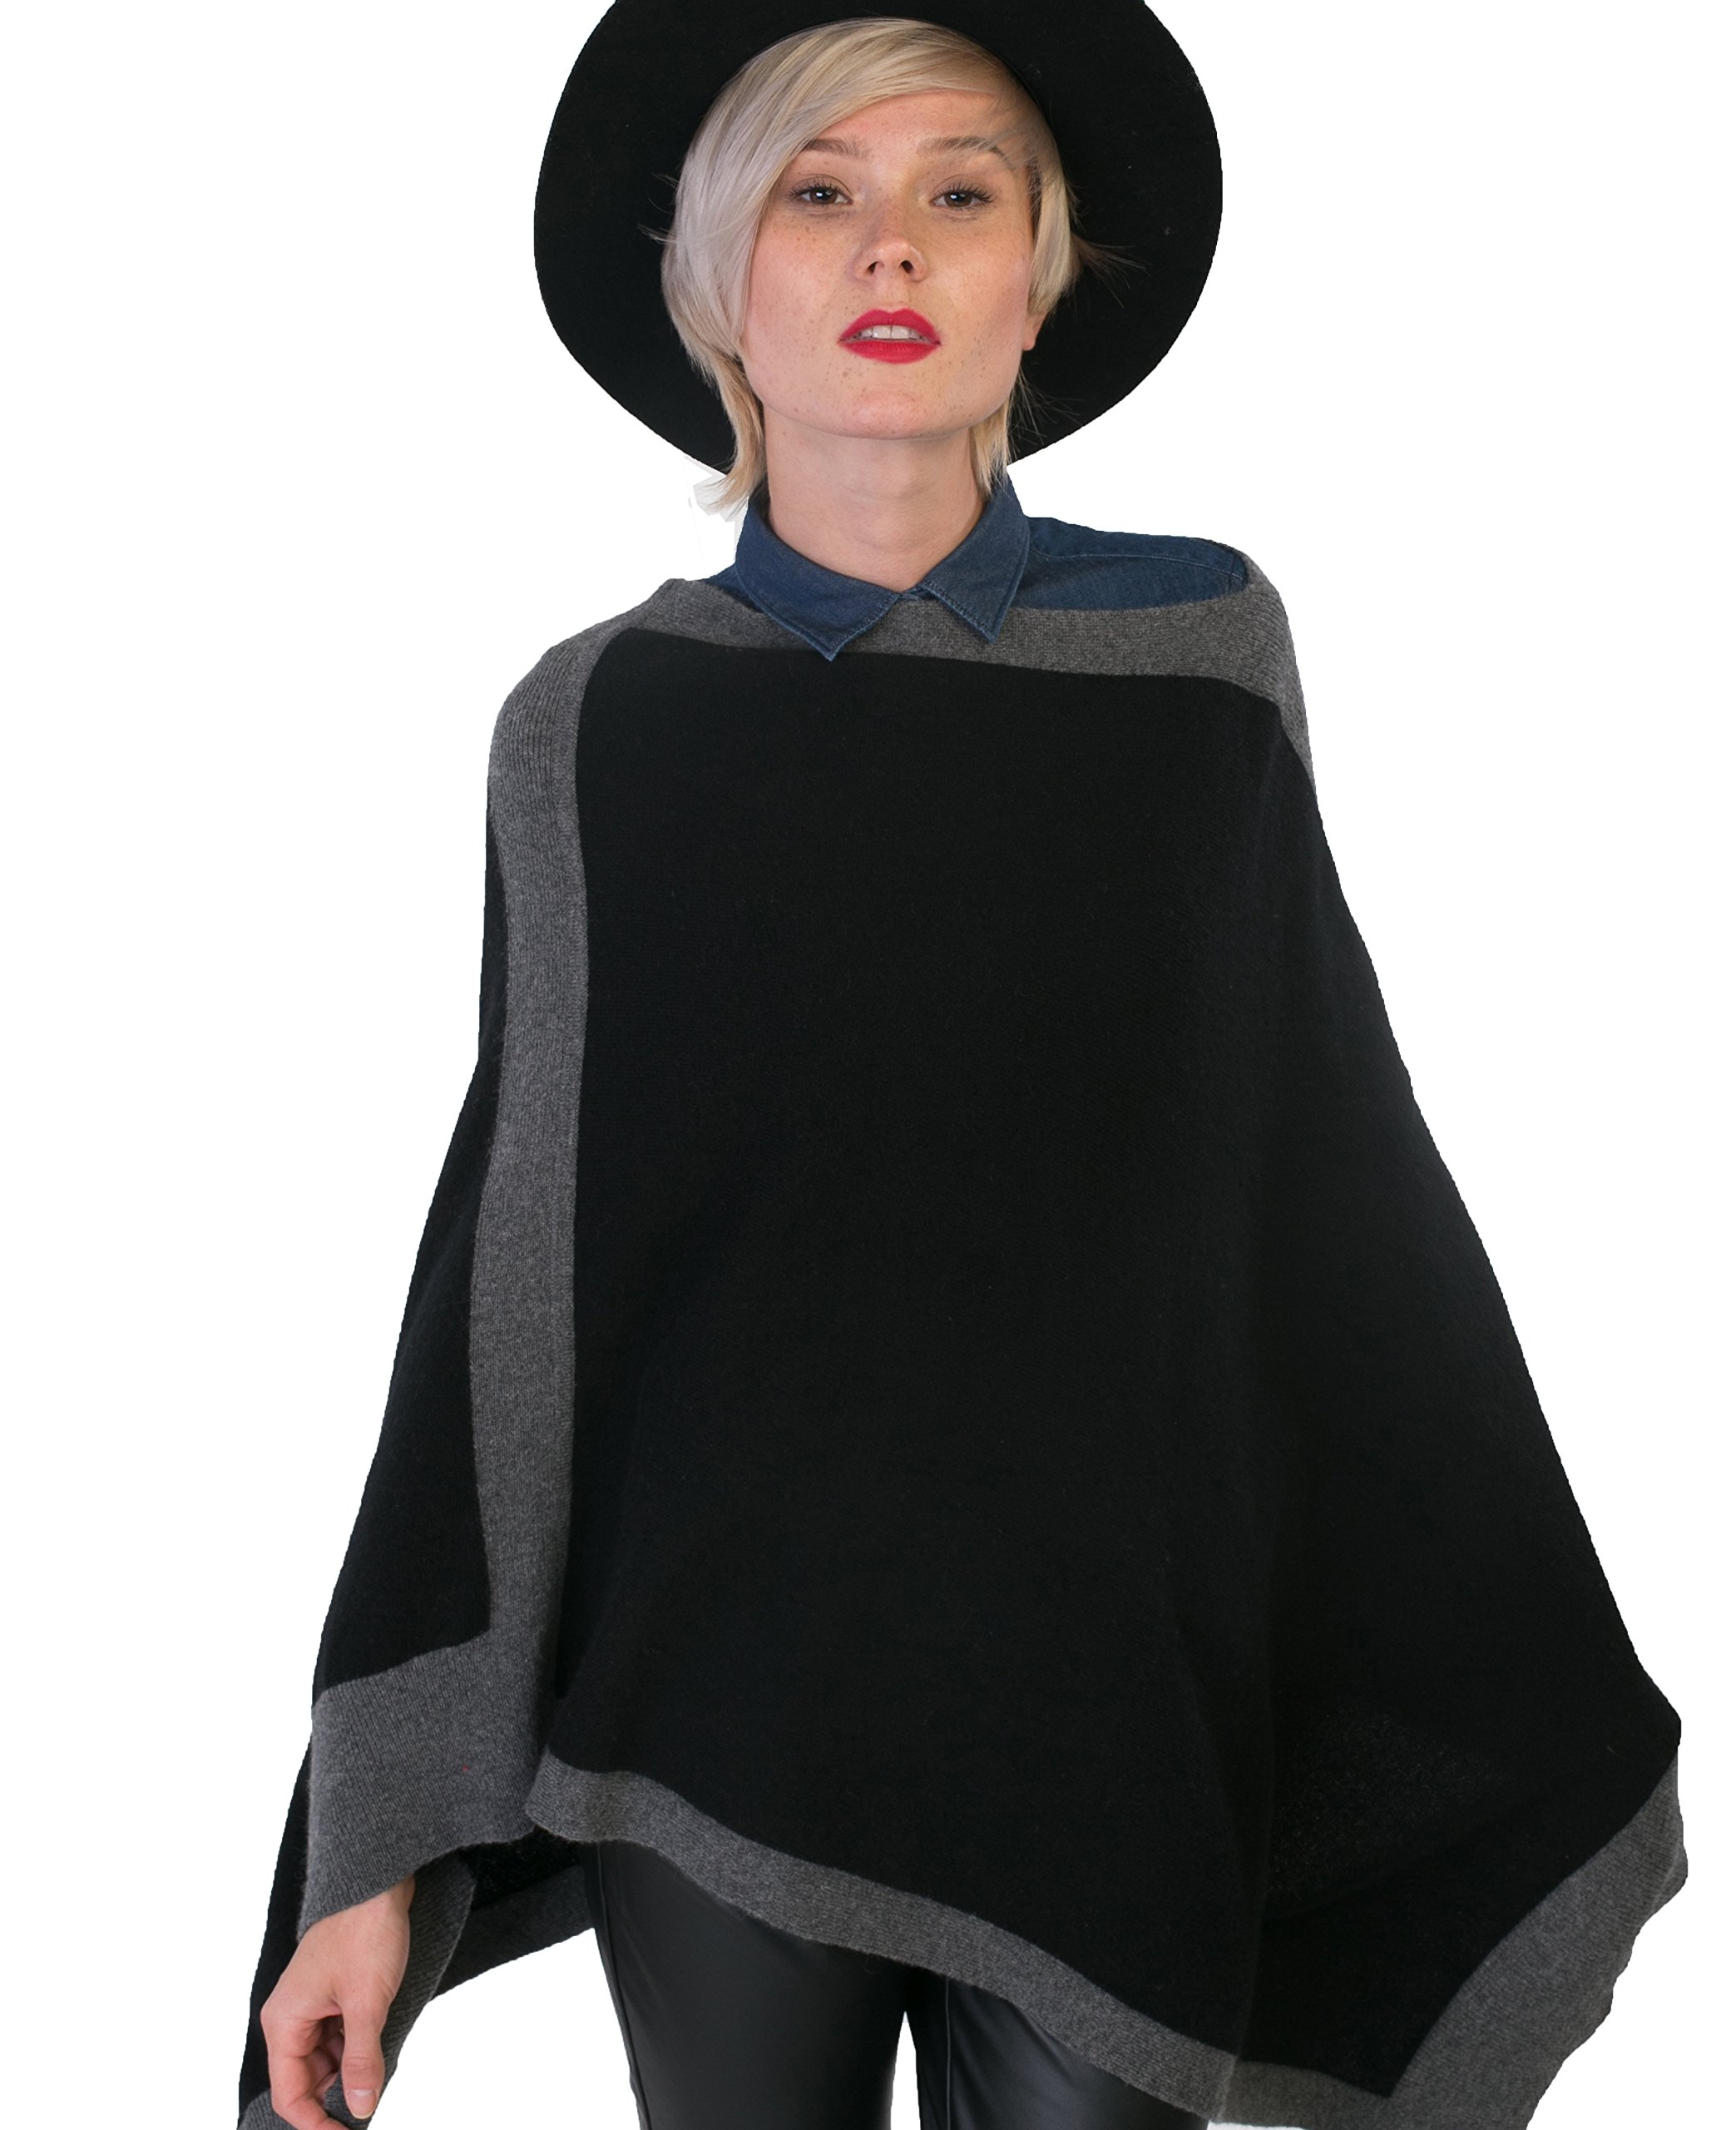 cashmere 4 U Women 100% Pure Cashmere Asymetrical Bicolor Knitted Poncho, Noir With Gris Moyen Border, One Size